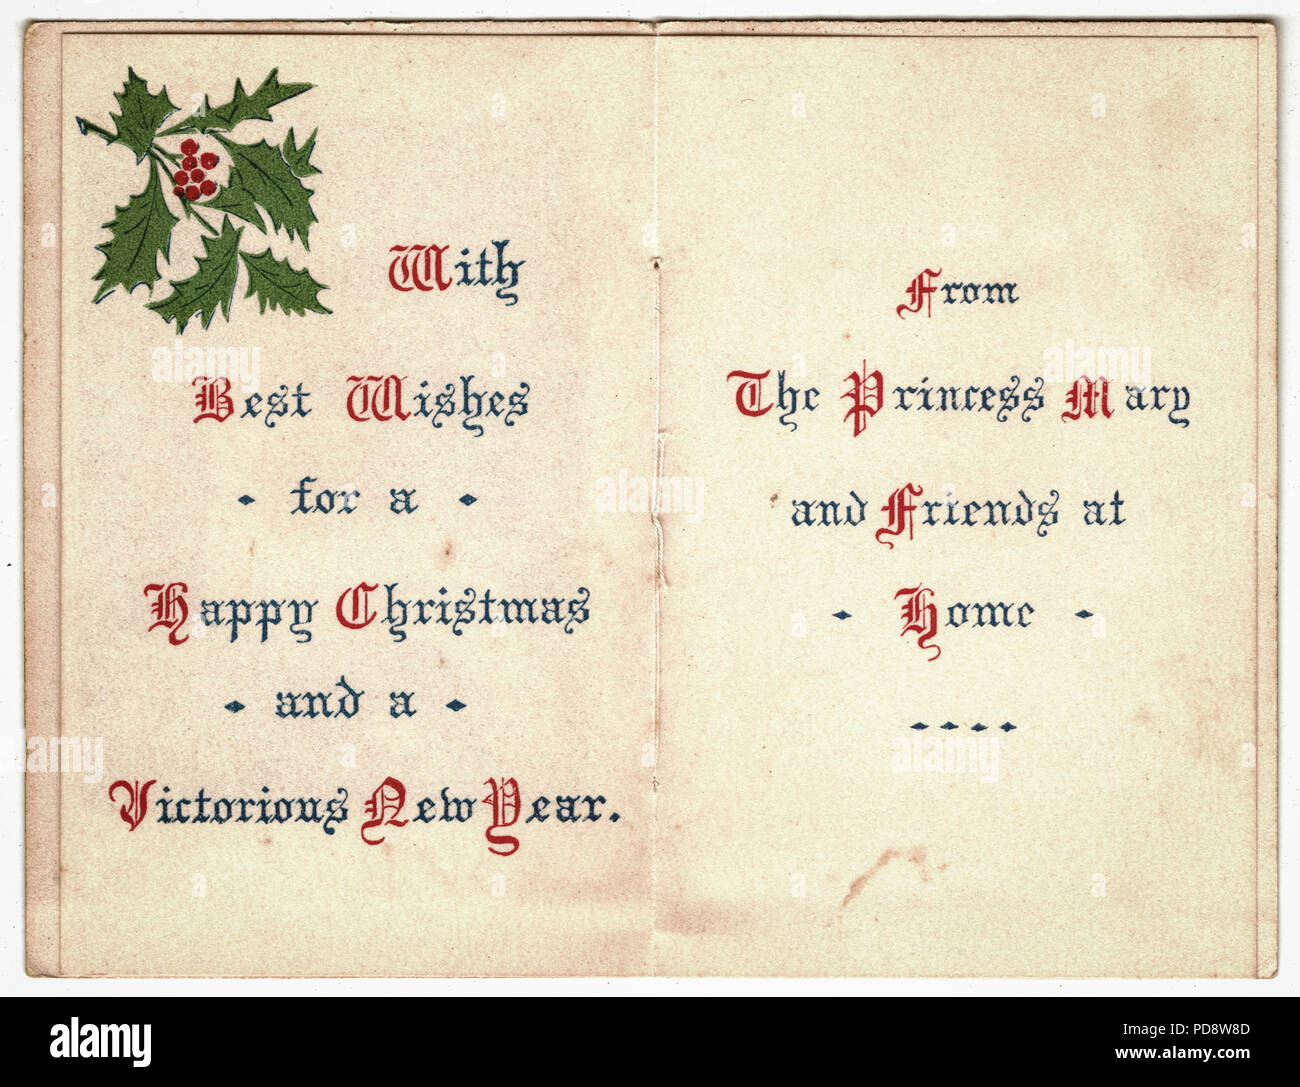 A Princess For Christmas Poster.World War 1 Princess Mary Card Wishing The Troops A Happy